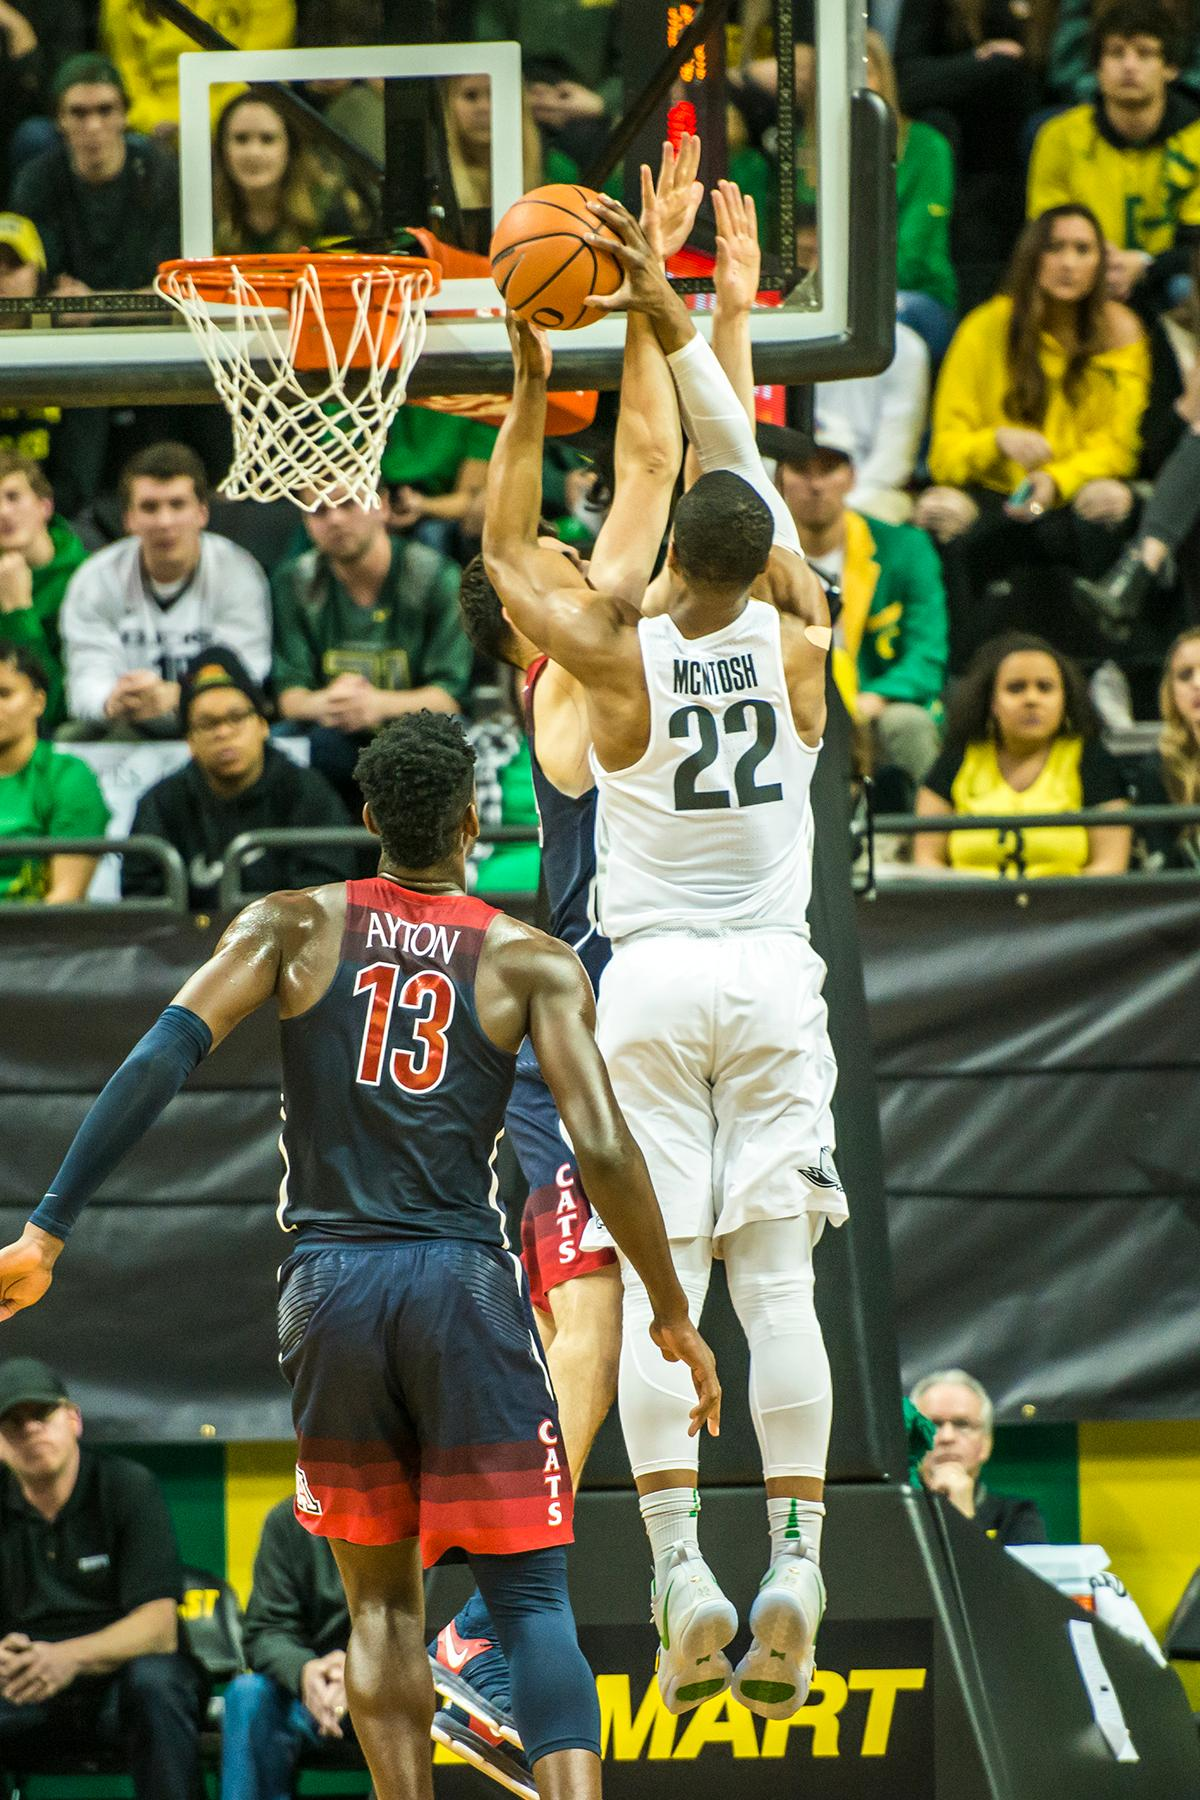 Oregon's MiKyle McIntosh goes up over Arizona defenders in their matchup at Matthew Knight Arena Saturday. The Ducks upset the fourteenth ranked Wildcats 98-93 in a stunning overtime win in front of a packed house of over 12,000 fans for their final home game to improve to a 19-10 (9-7 PAC-12) record on the season. Oregon will finish out regular season play on the road in Washington next week against Washington State on Thursday, then Washington on the following Saturday. (Photo by Colin Houck)